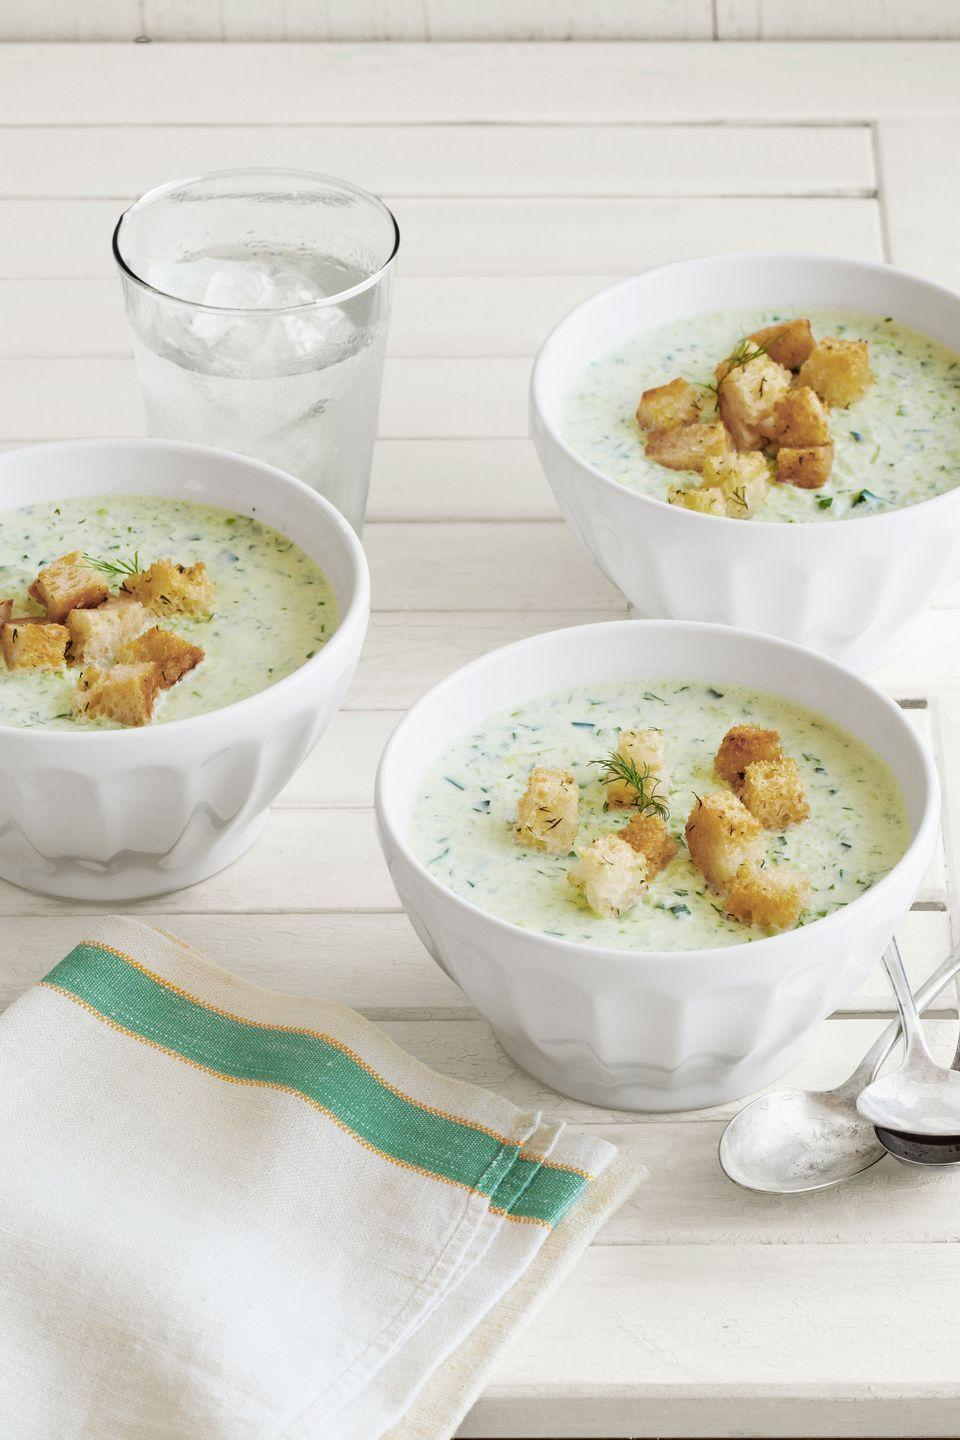 "<p>Cool and refreshing, this soup gets its creaminess from healthy Greek yogurt. </p><p><strong><a href=""https://www.countryliving.com/food-drinks/recipes/a5448/chilled-cucumber-soup-recipe-clv0813/"" rel=""nofollow noopener"" target=""_blank"" data-ylk=""slk:Get the recipe"" class=""link rapid-noclick-resp"">Get the recipe</a>.</strong></p><p><a class=""link rapid-noclick-resp"" href=""https://www.amazon.com/Cuisinart-DFP-14CPYAMZ-Food-Processor/dp/B07XJ8FCXH?tag=syn-yahoo-20&ascsubtag=%5Bartid%7C10050.g.850%5Bsrc%7Cyahoo-us"" rel=""nofollow noopener"" target=""_blank"" data-ylk=""slk:SHOP FOOD PROCESSORS"">SHOP FOOD PROCESSORS</a></p>"